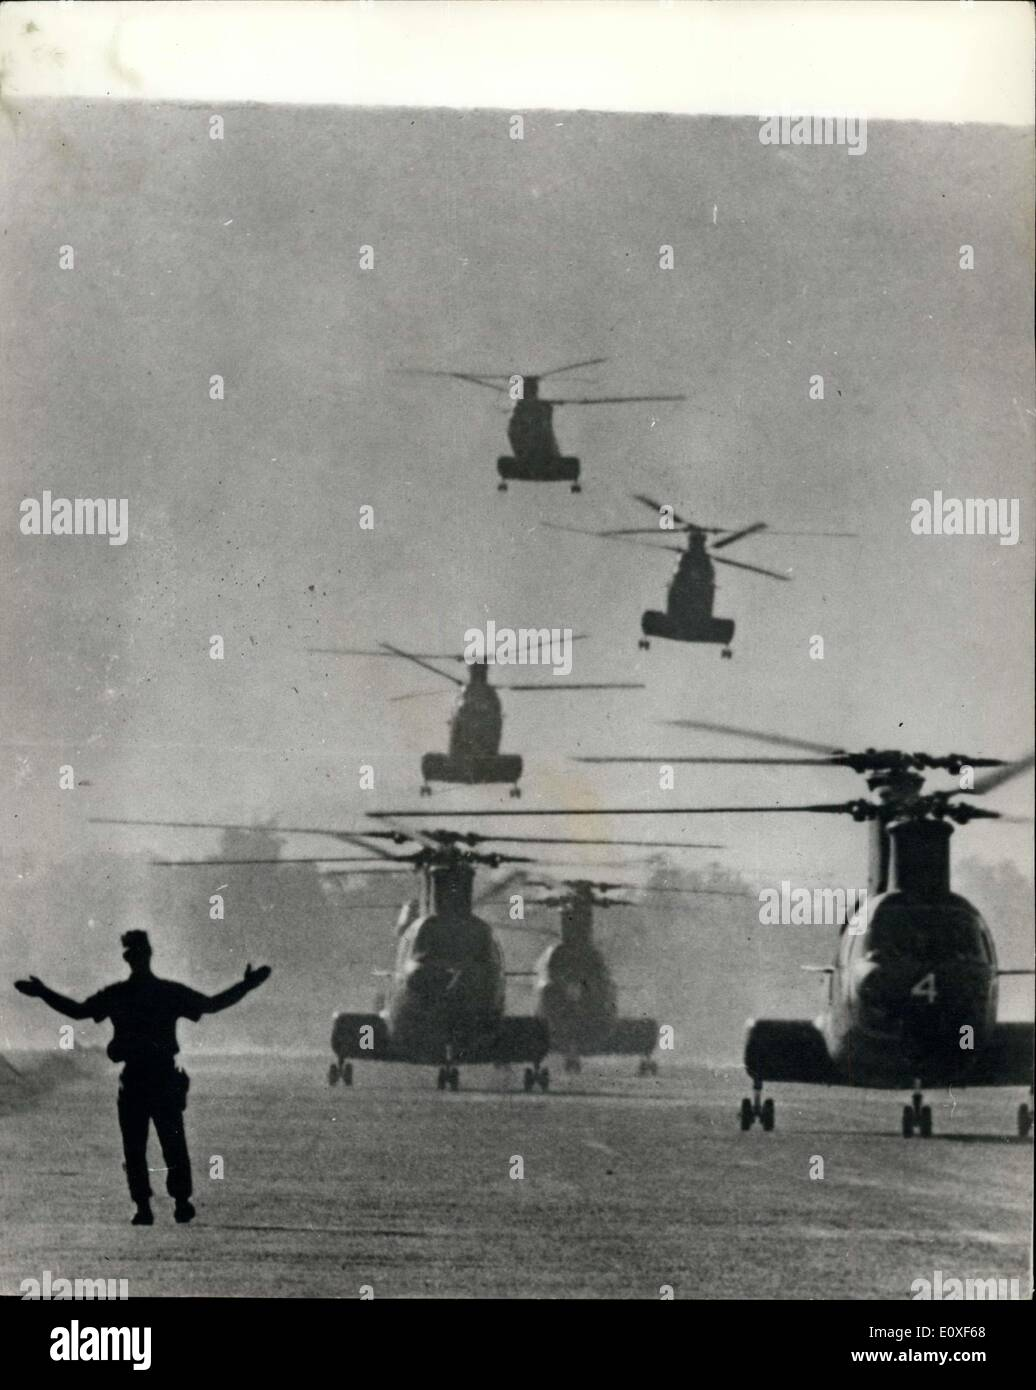 Aug. 04, 1966 - The war in Vietnam: A member of the ground crew of Marine Helicopter Squadron helps to guide a flight of Sea Knight helicopters in for a landing after an operation near Chu Lai, Vietnam. - Stock Image